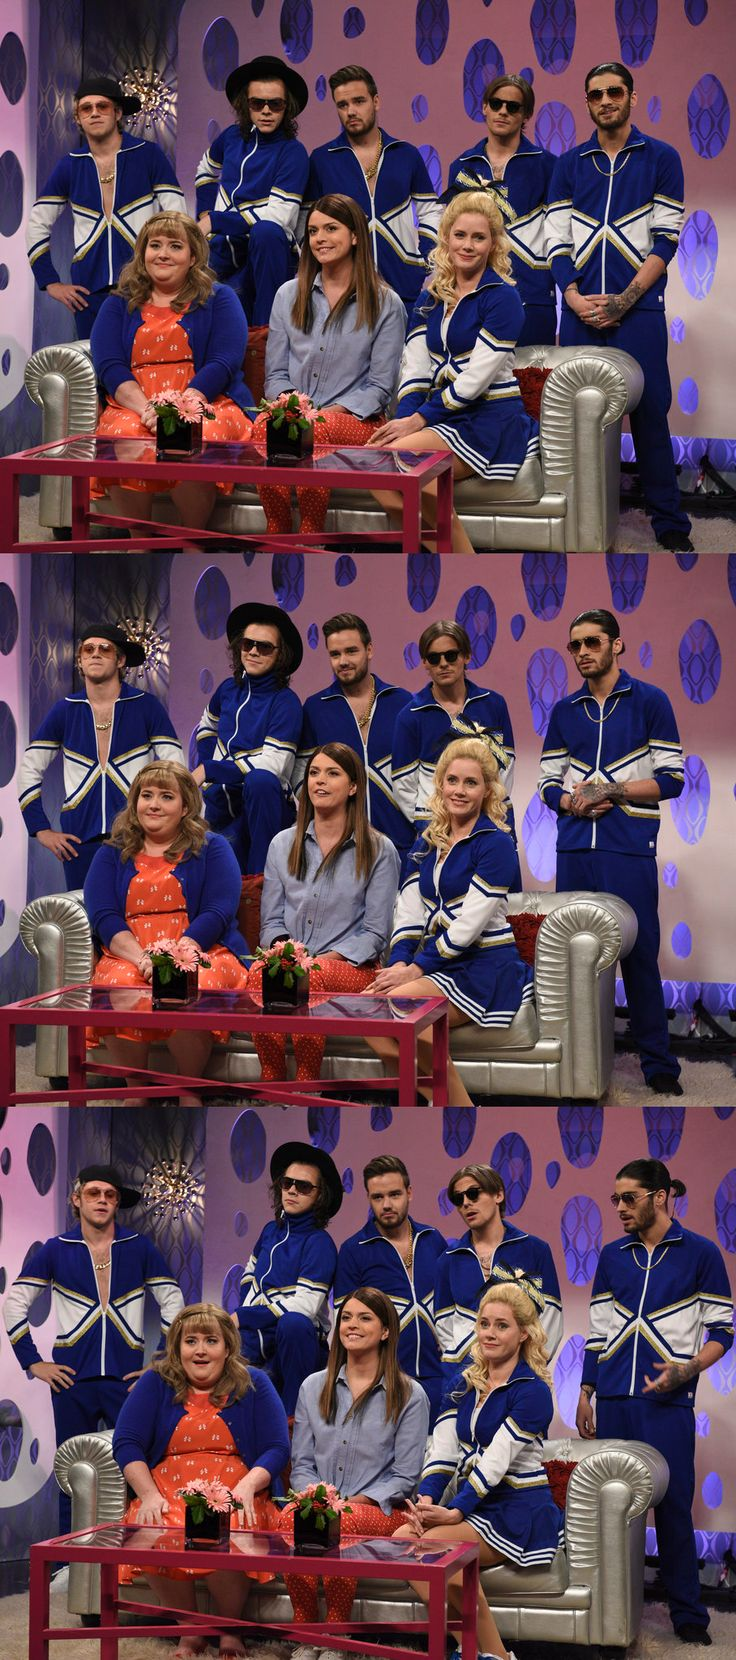 One Direction on SNL. This was hilarious!! Niall Horan / Liam Payne / Harry Styles / Louis Tomlinson / Zayn Malik